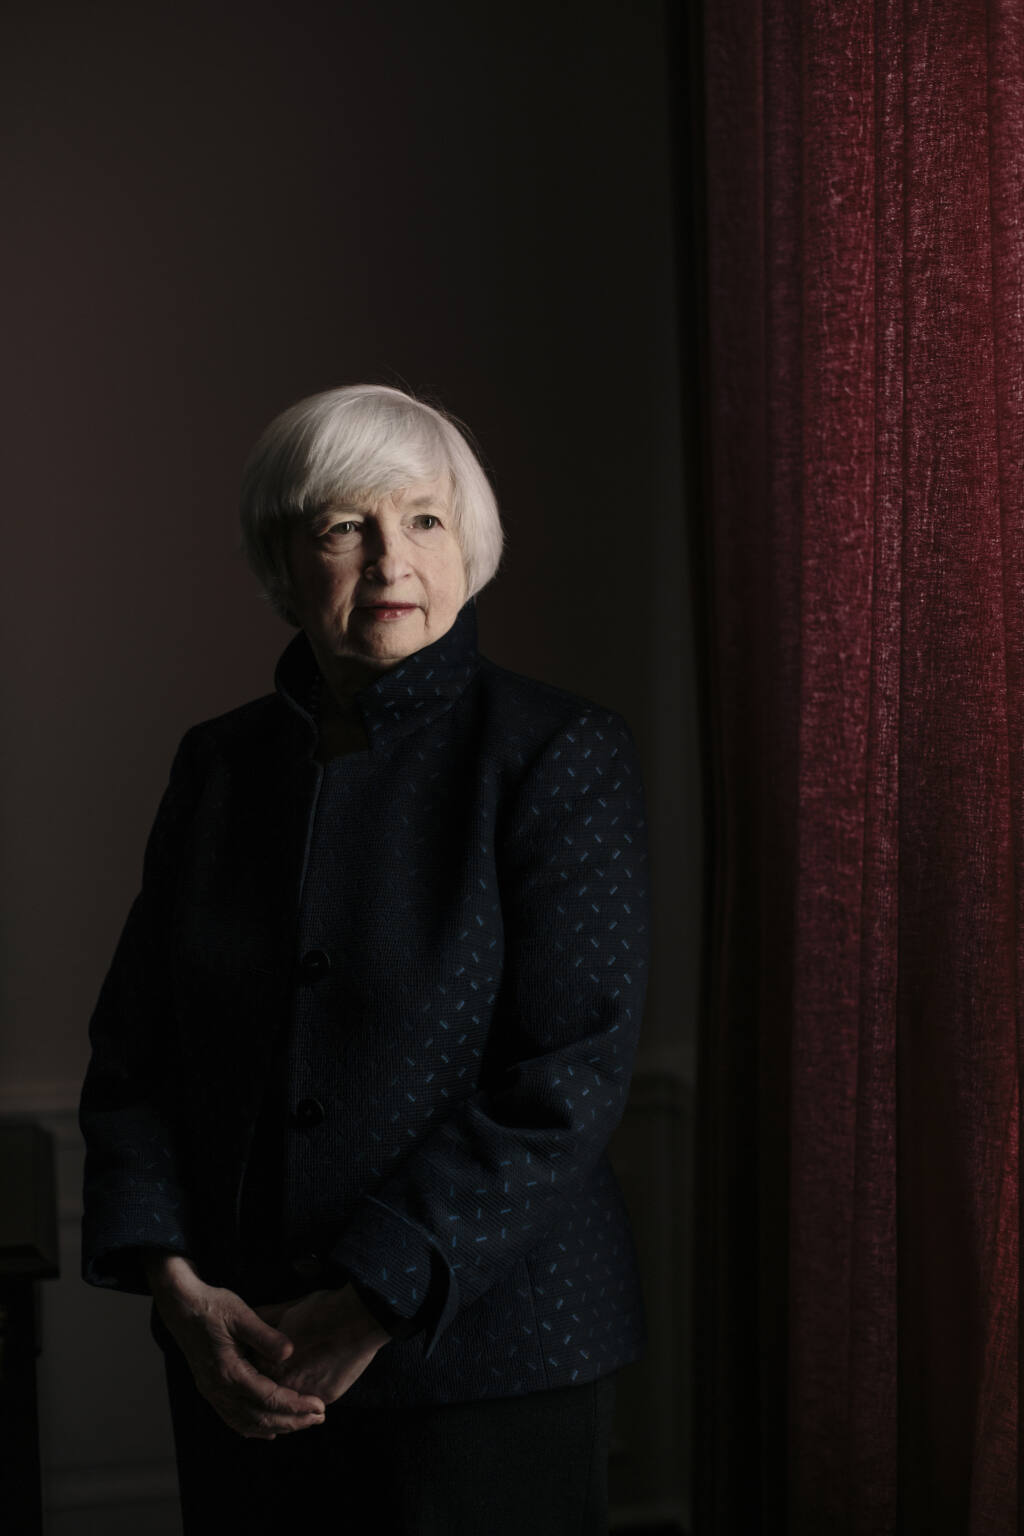 """FILE -- Treasury Secretary Janet Yellen in Washington on Oct. 31, 2017. """"To put this in a broader context, what we're looking at here is the beginning of an attempt to fix a system that is rigged against workers in favor of capital,"""" writes The New York Times opinion columnist Paul Krugman. (Lexey Swall/The New York Times)"""